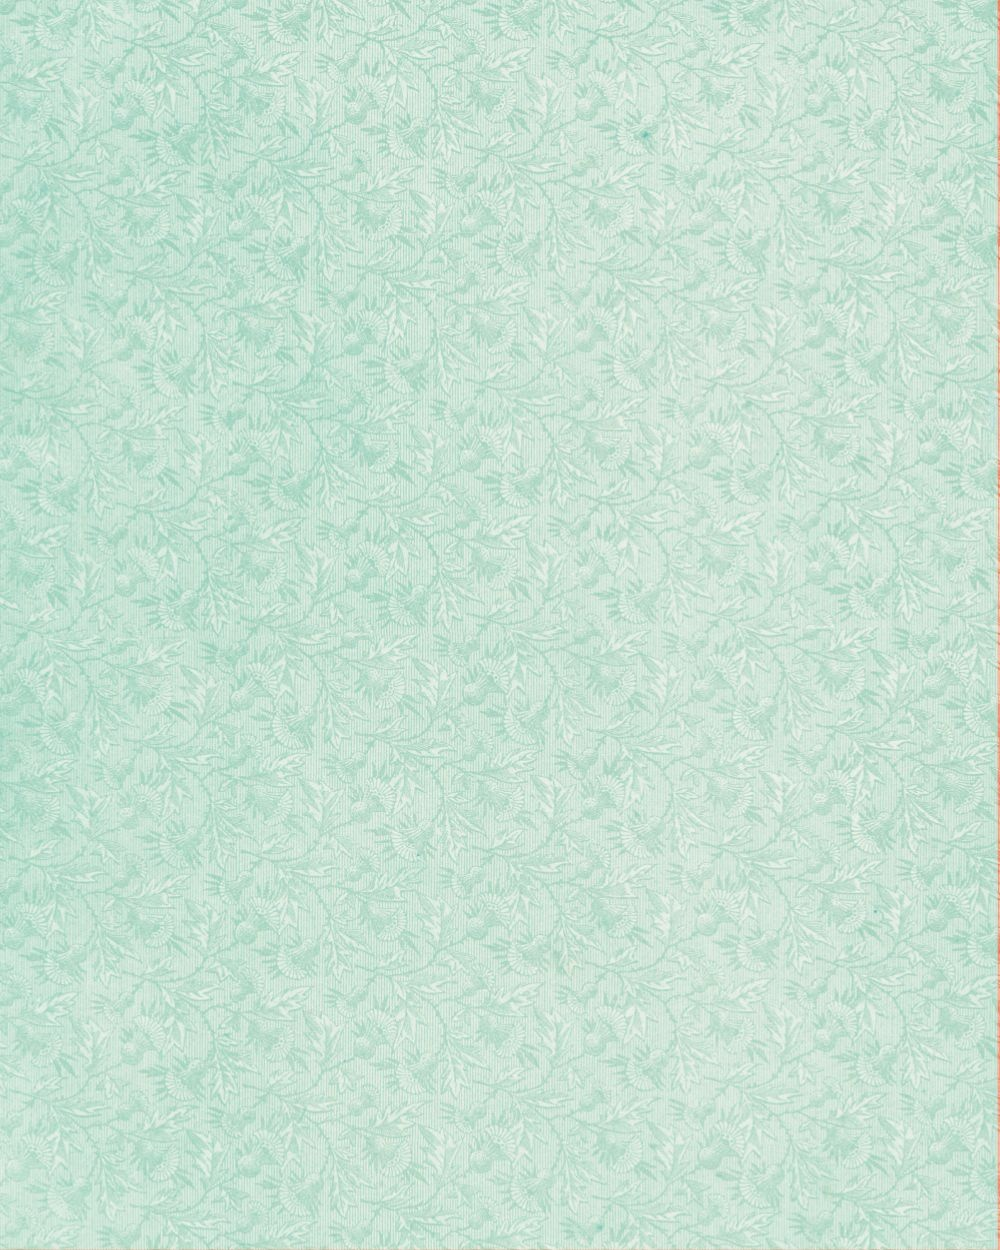 Free Floral Paper Backgrounds   Backgrounds!   Ceramic Subway Tile - Free Printable Backgrounds For Paper